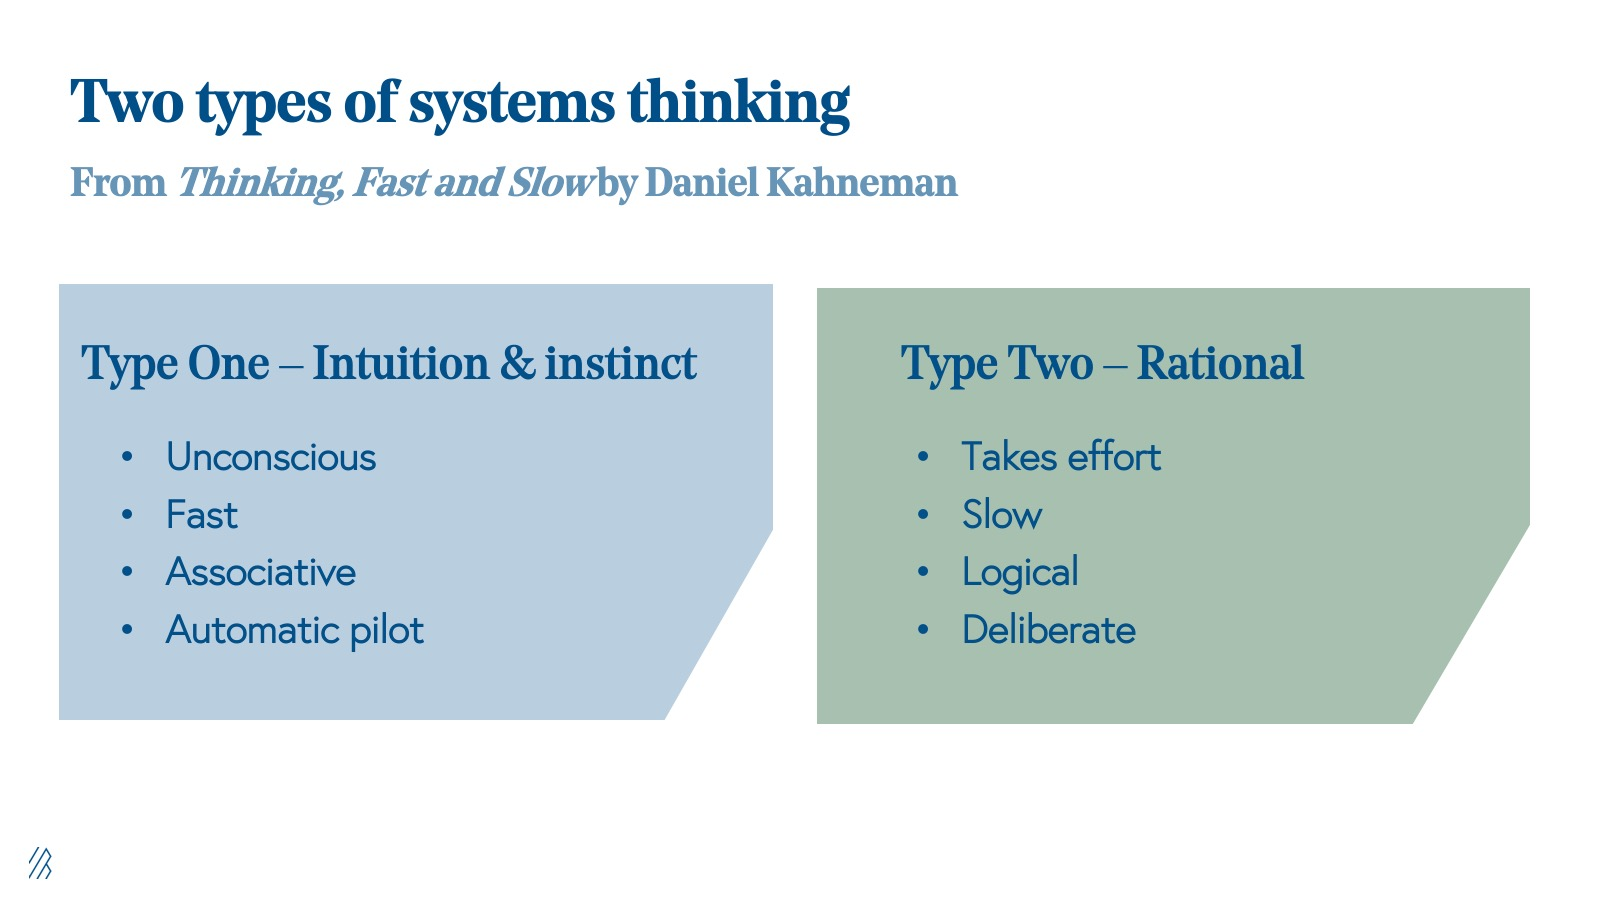 Two types of systems thinking